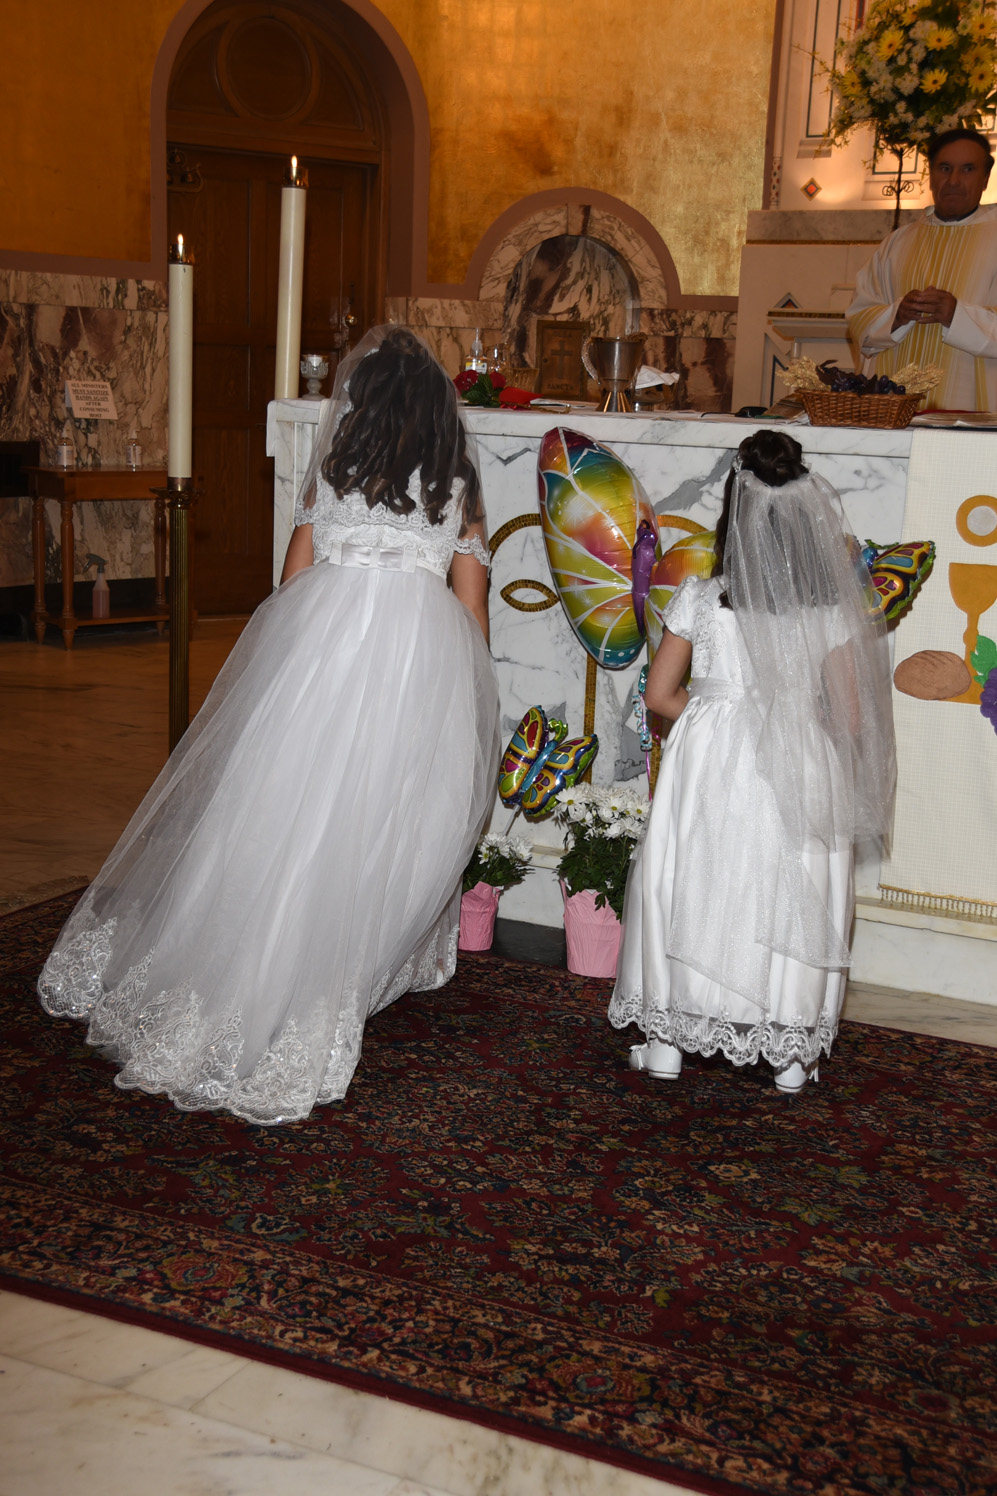 FIRST-COMMUNION-MAY-2-2021-1001001198